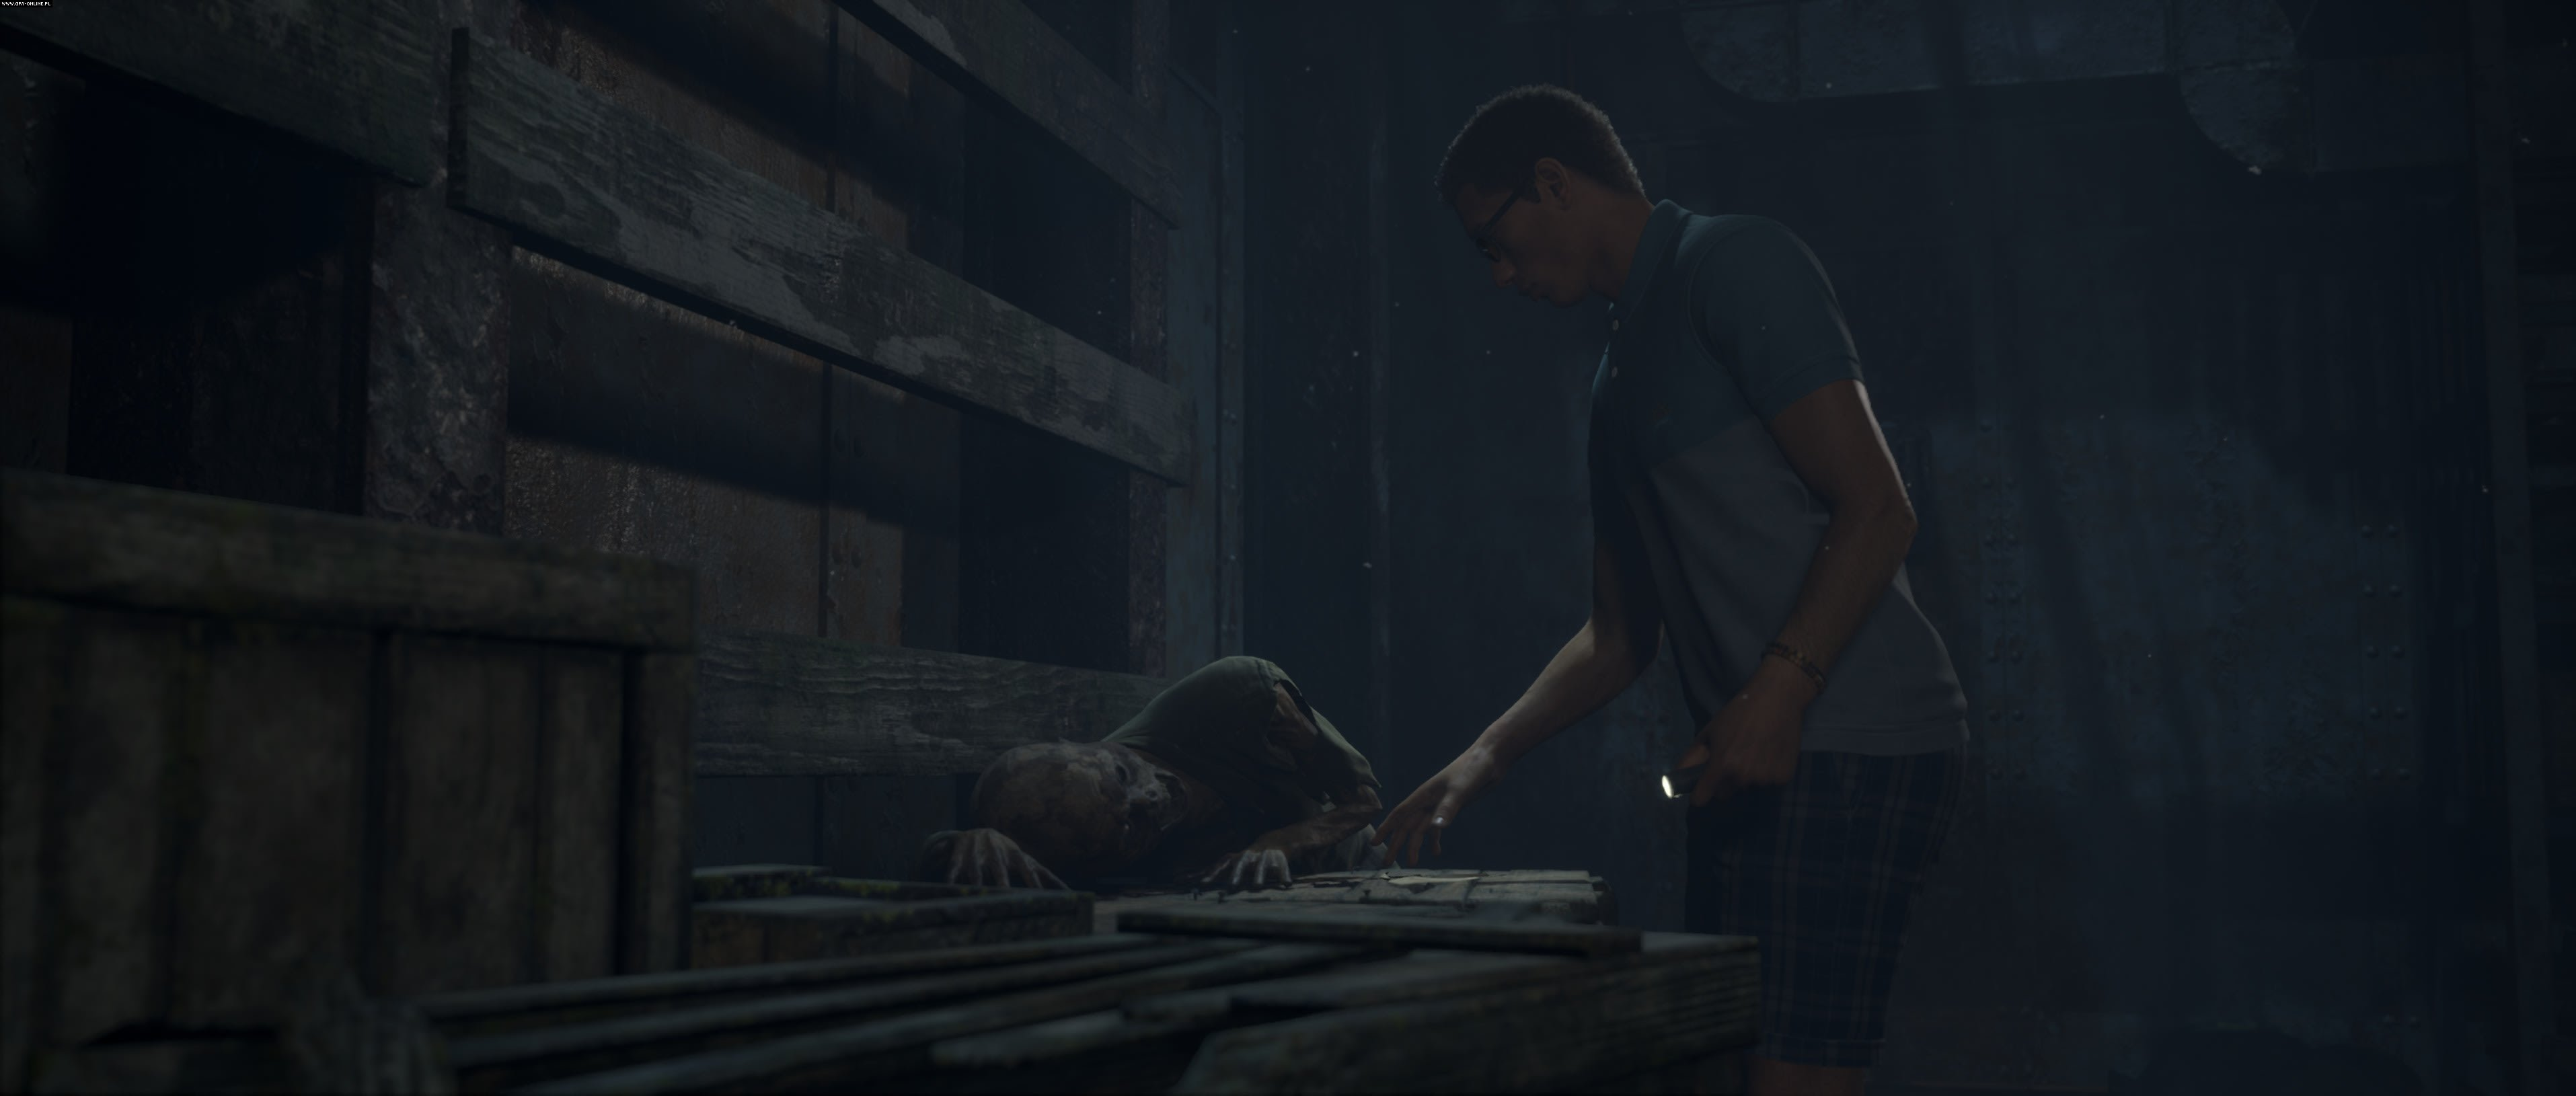 The Dark Pictures: Man of Medan PC, PS4, XONE Games Image 3/12, Supermassive Games, Bandai Namco Entertainment